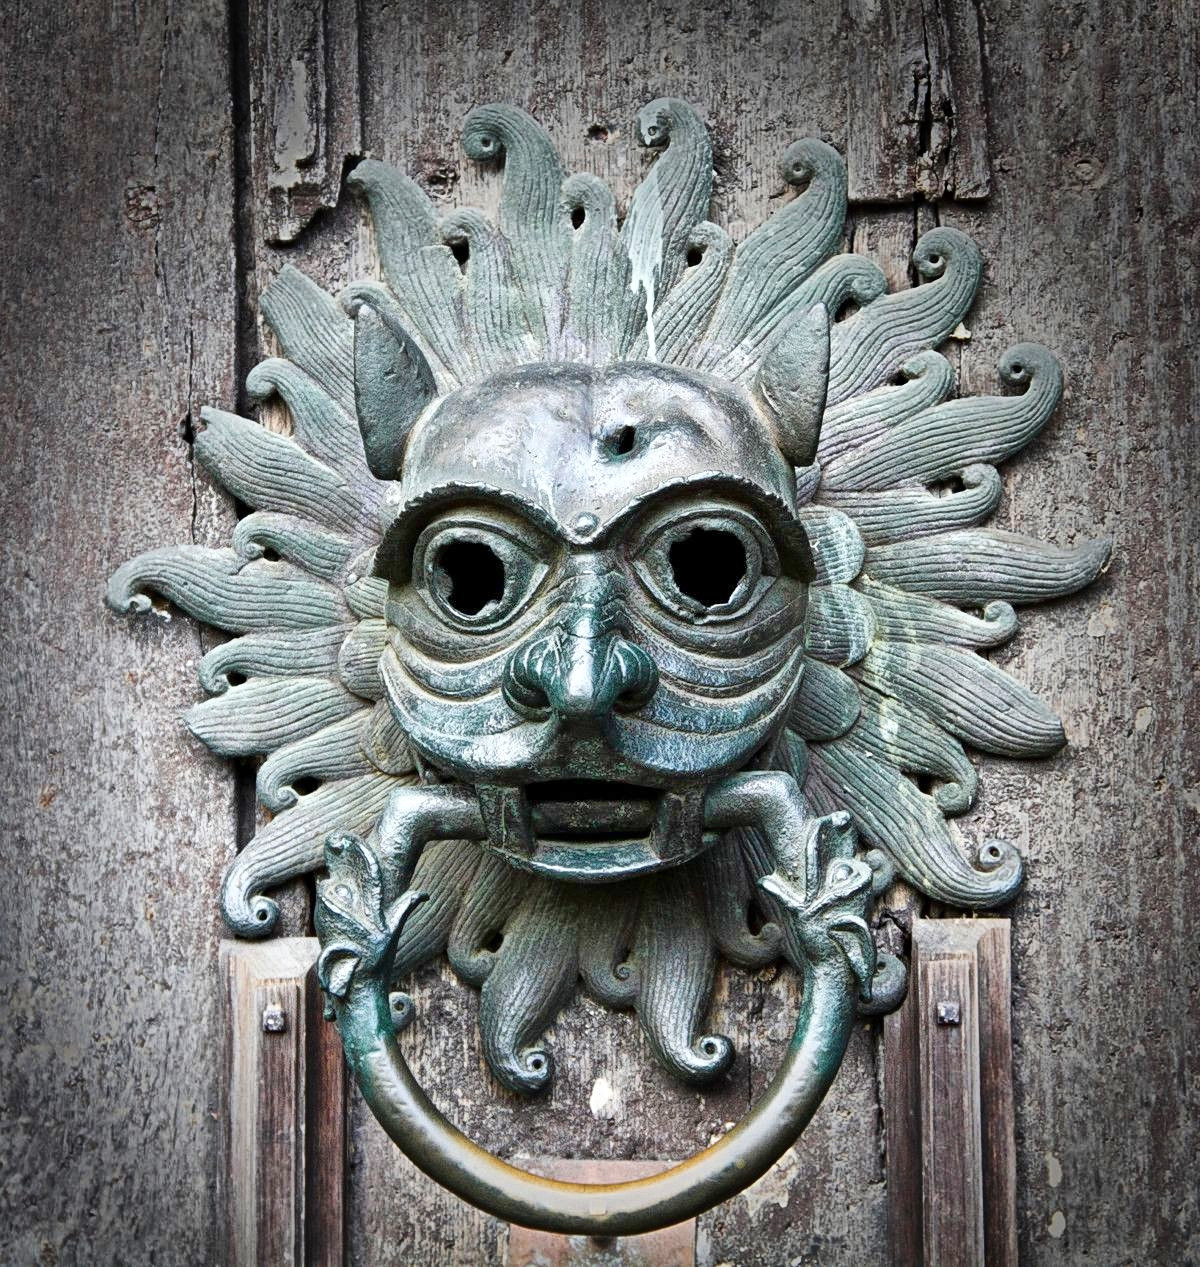 Door knocker at Durham Cathedral. Credit Michael Beckwith